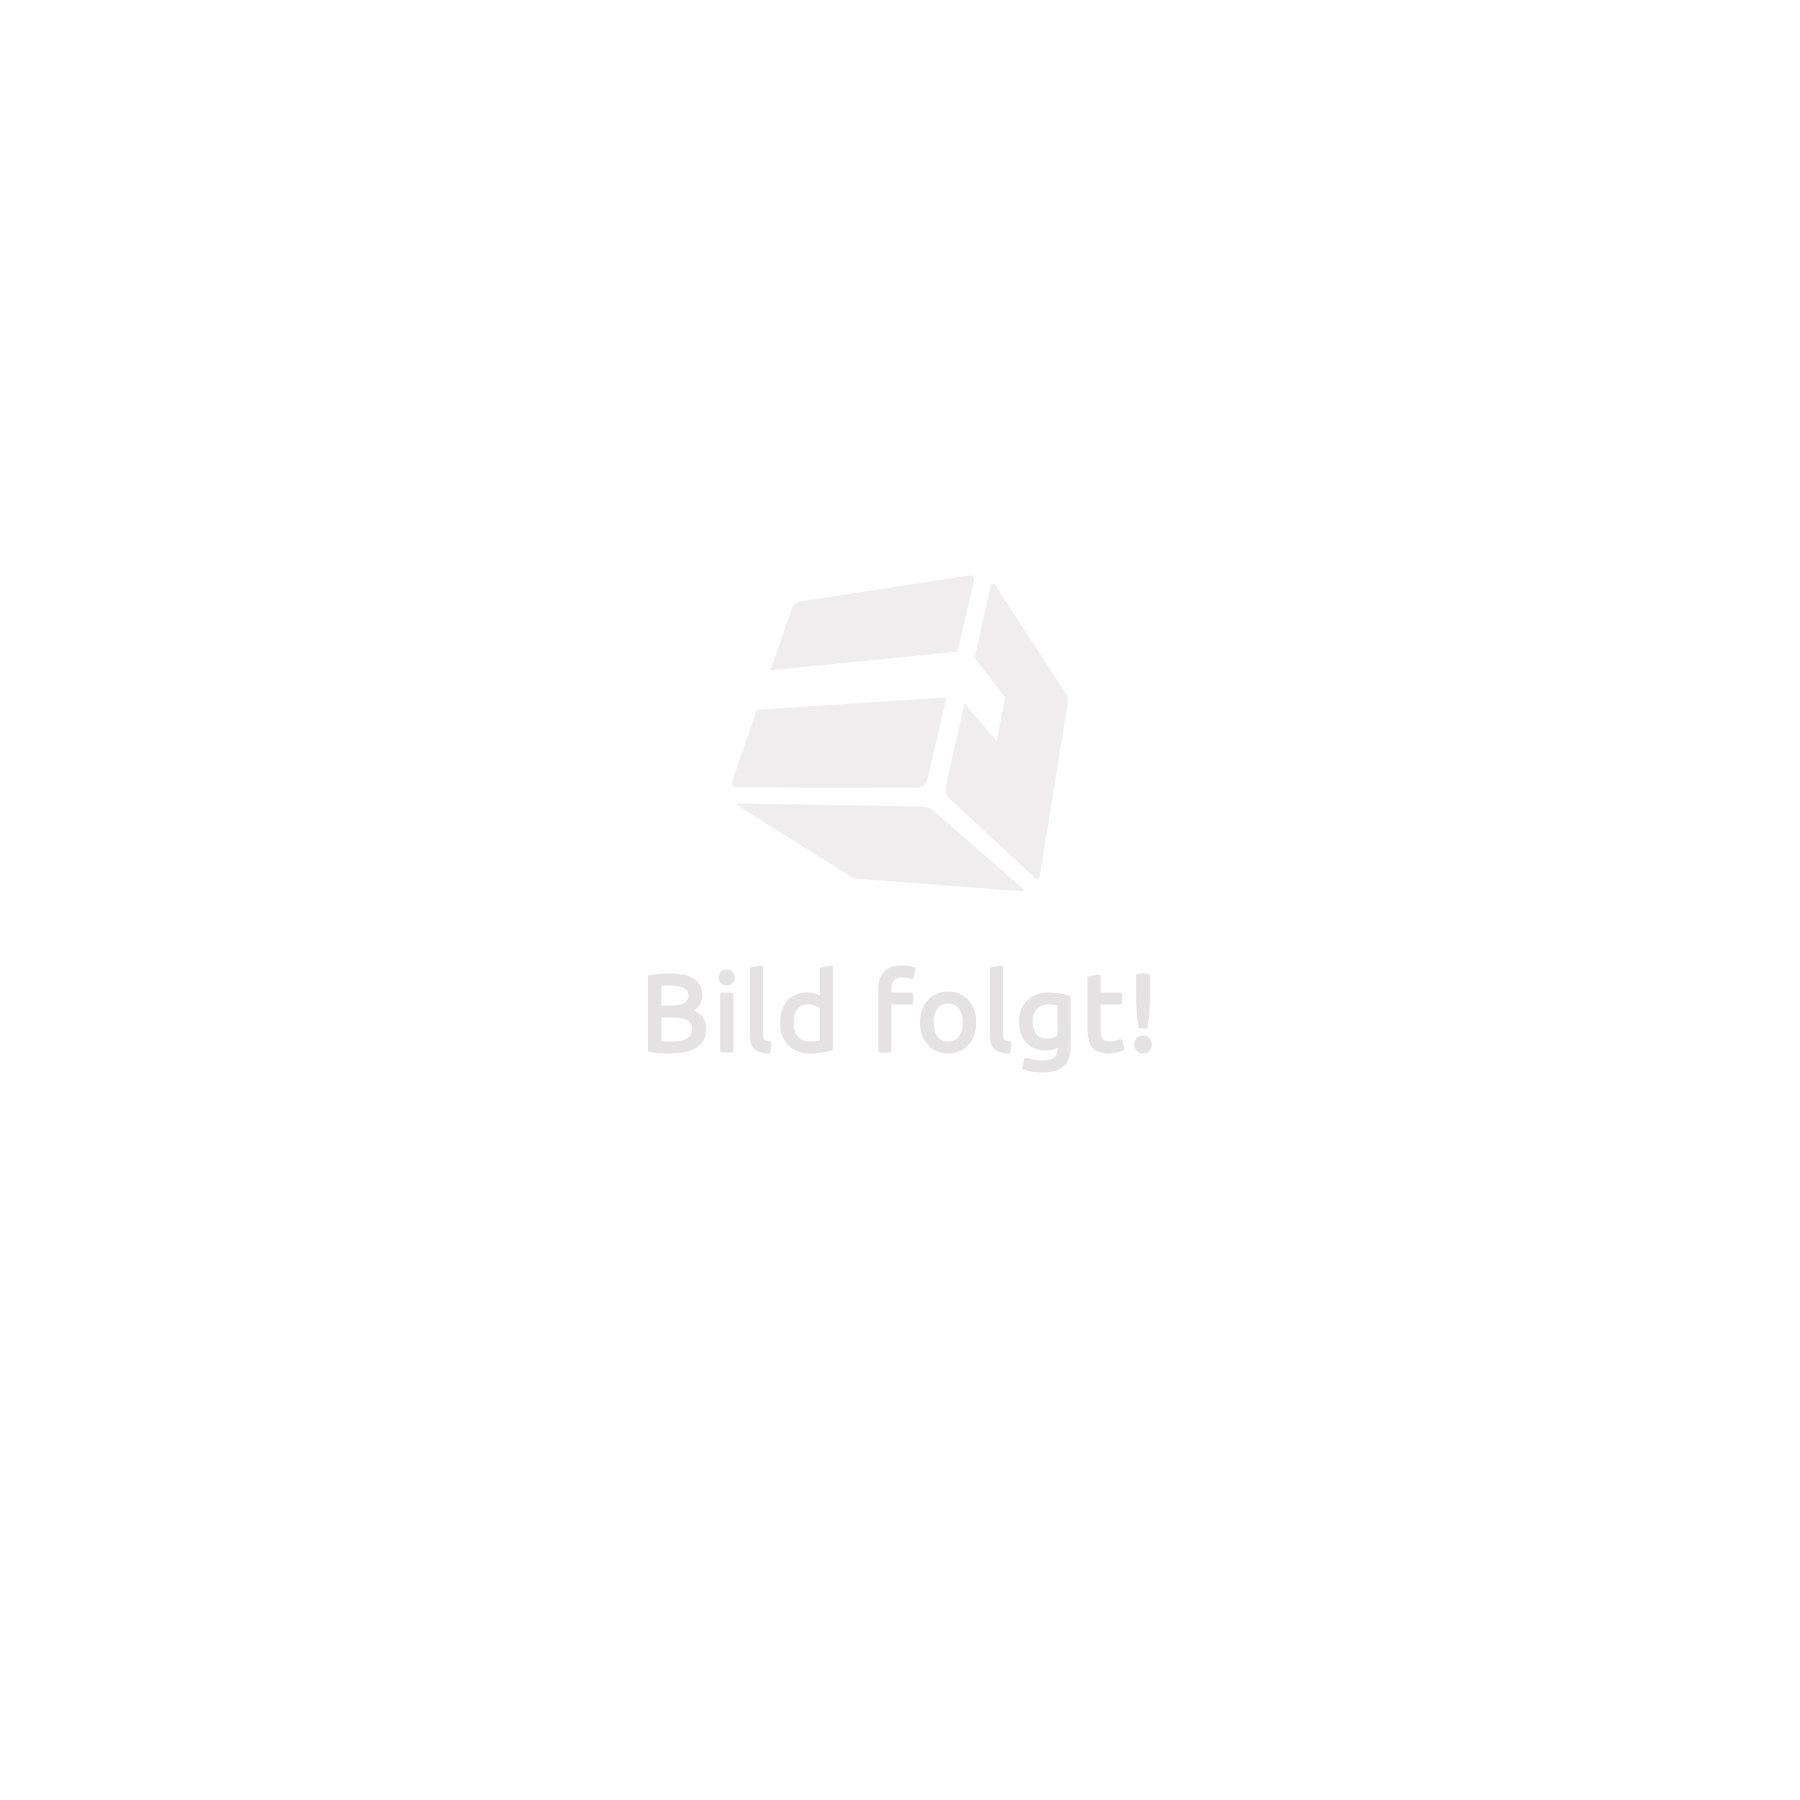 Wooden laptop stand, bed table 72x35x26 adjustable